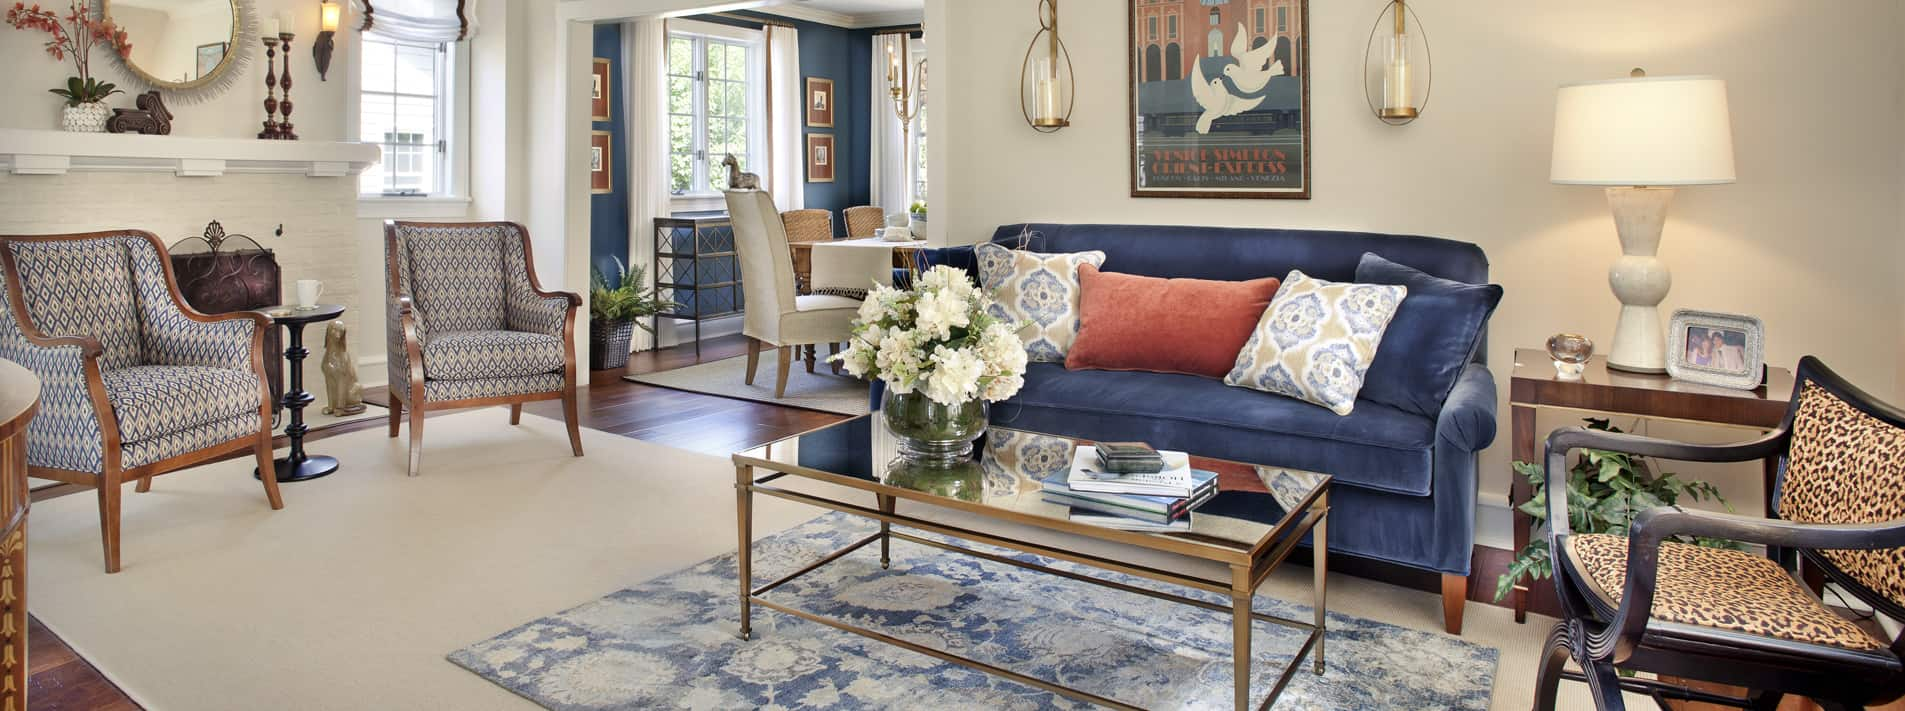 New Jersey Family Living Room Design